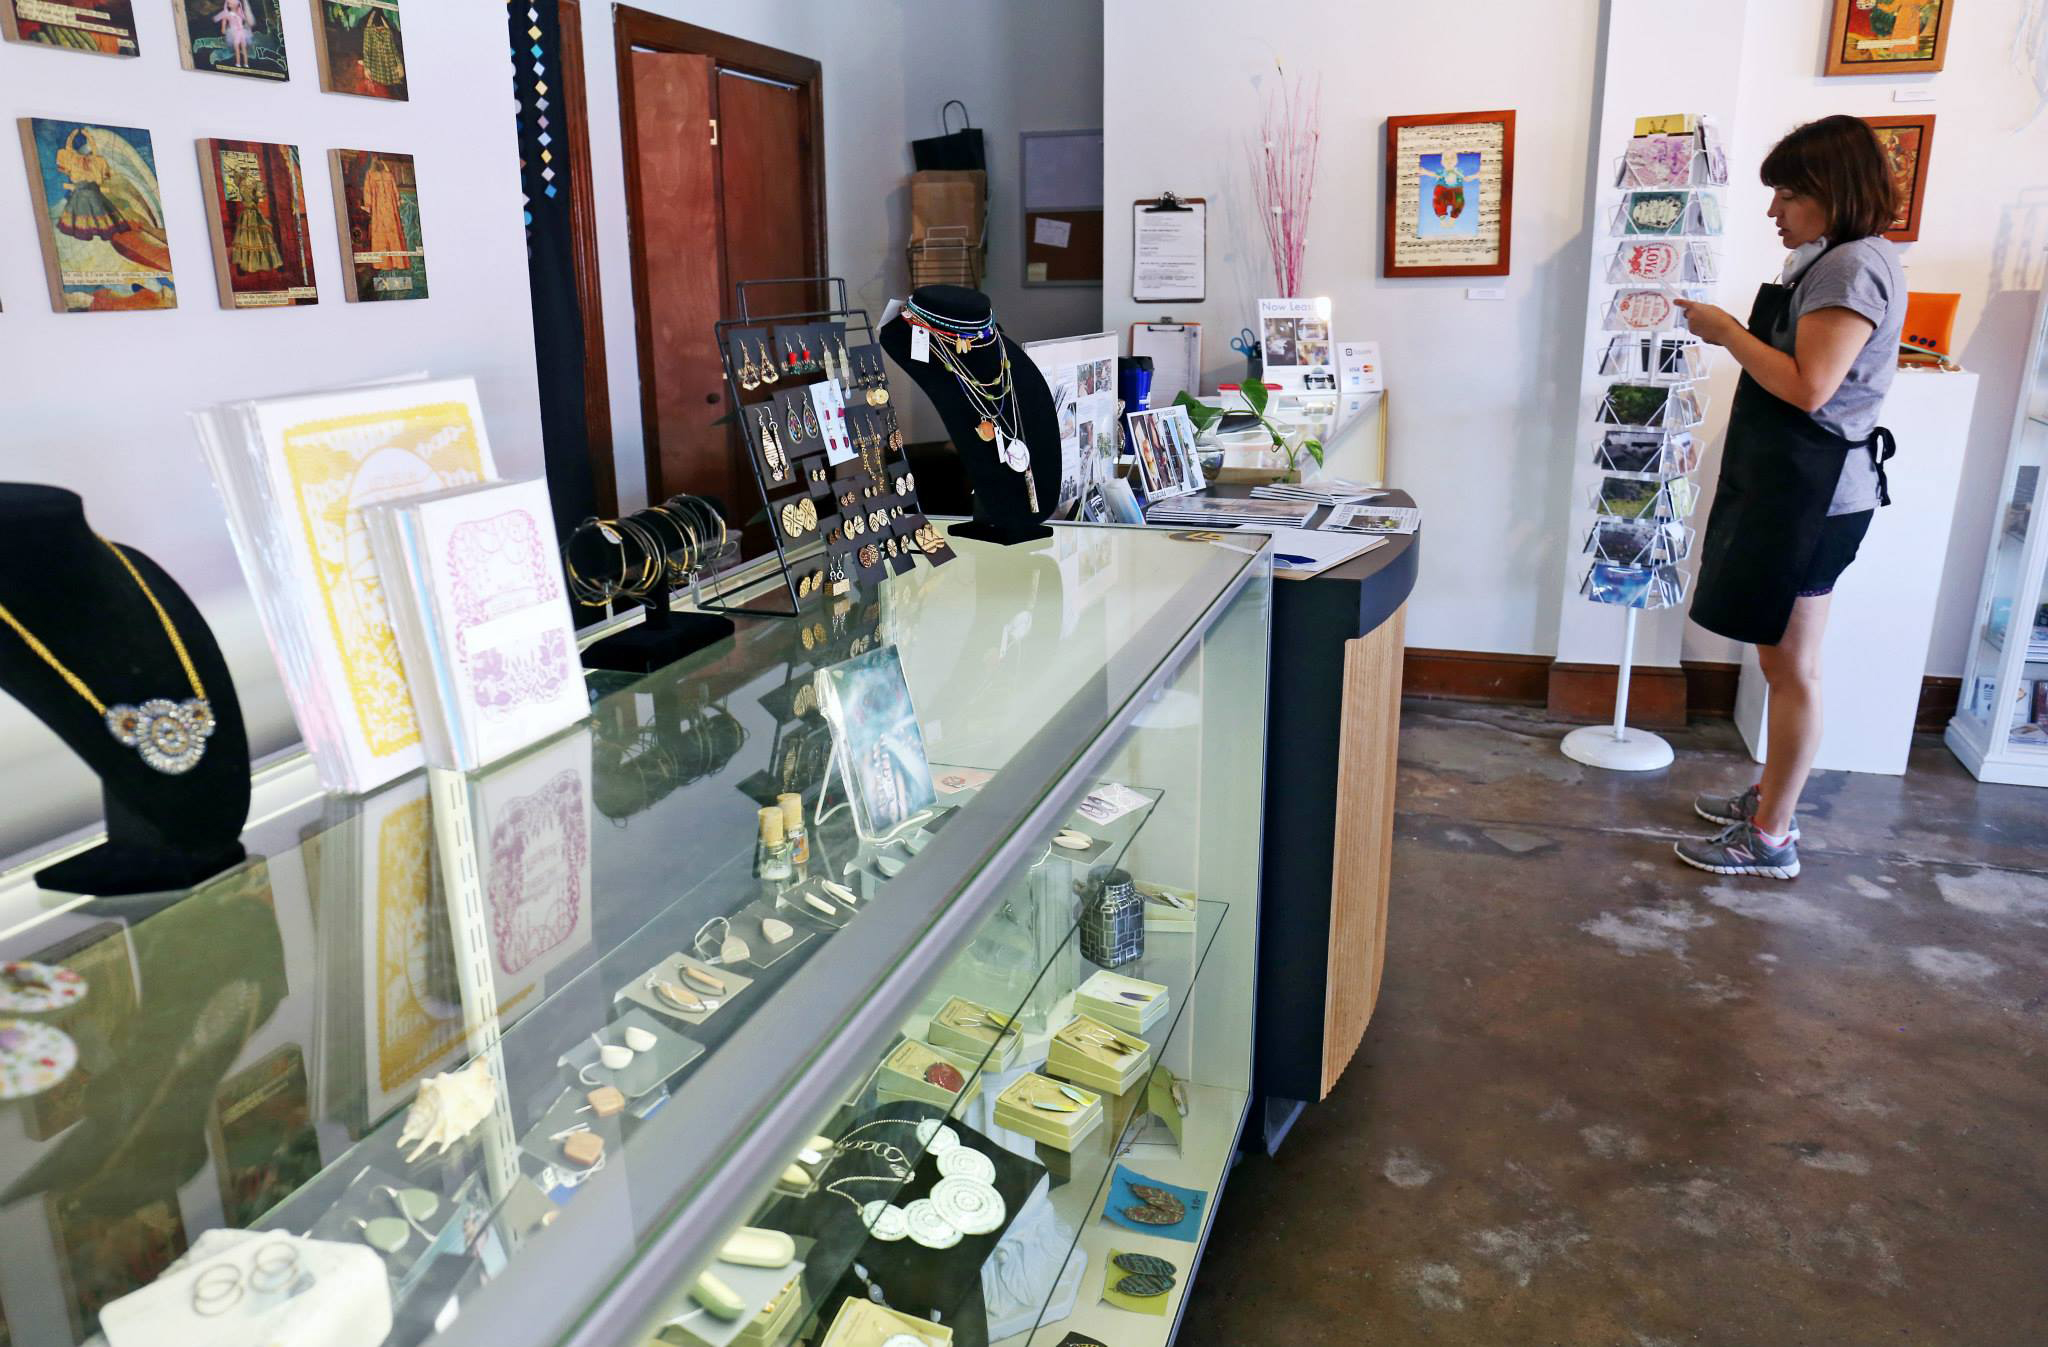 I helped manage the gallery and retail space as well as the metals studio.